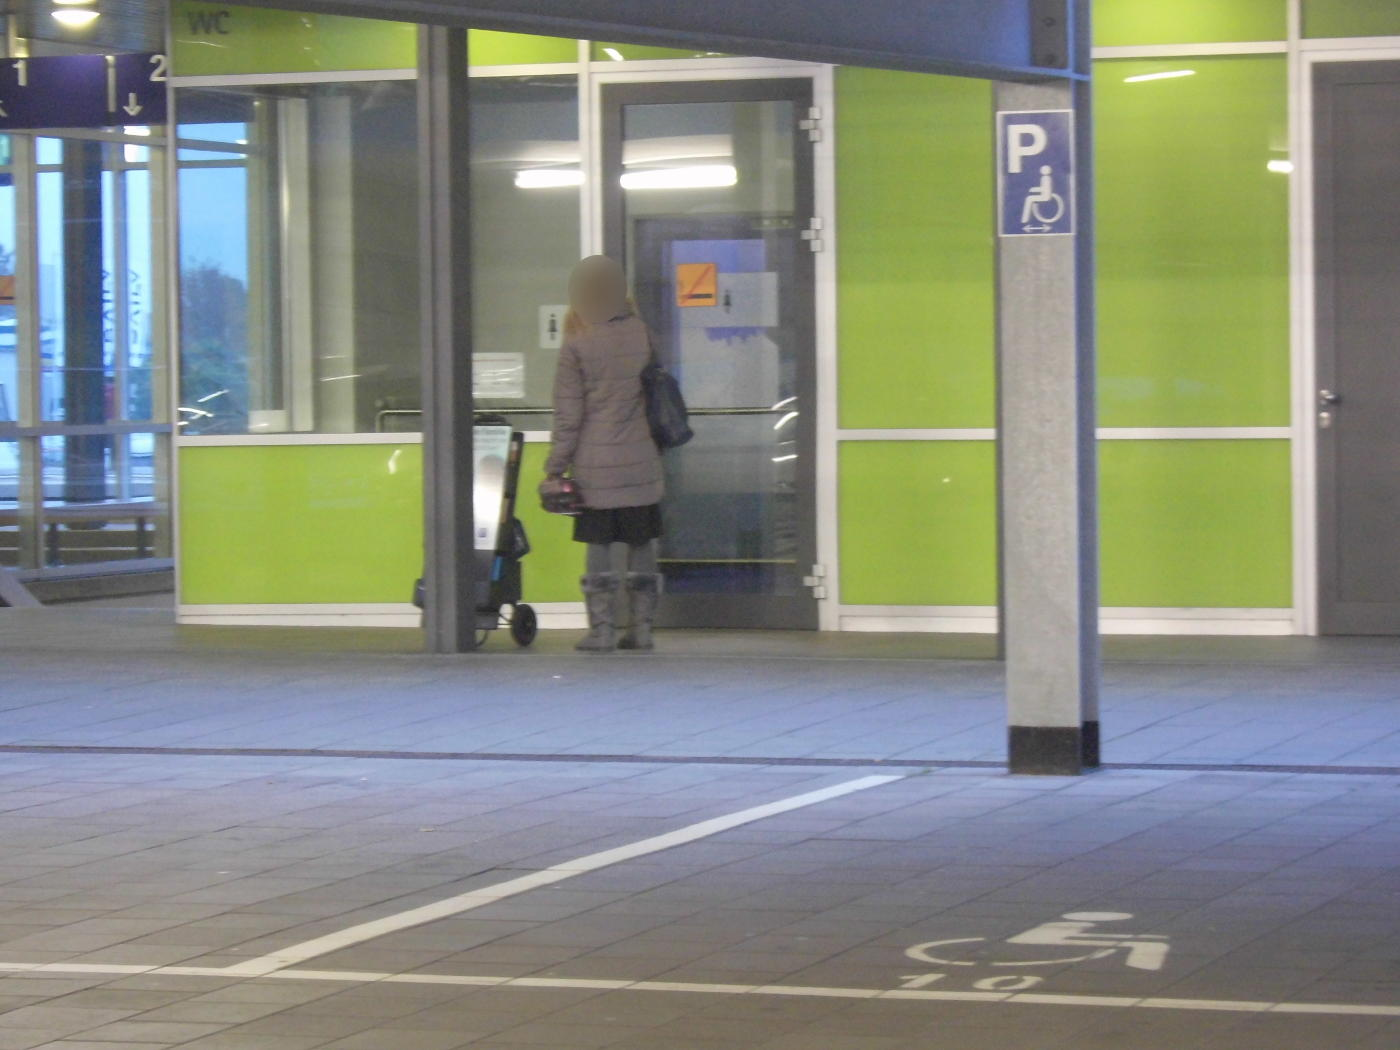 Wiesloch: Jehovah's Witnesses and their snitch frustration